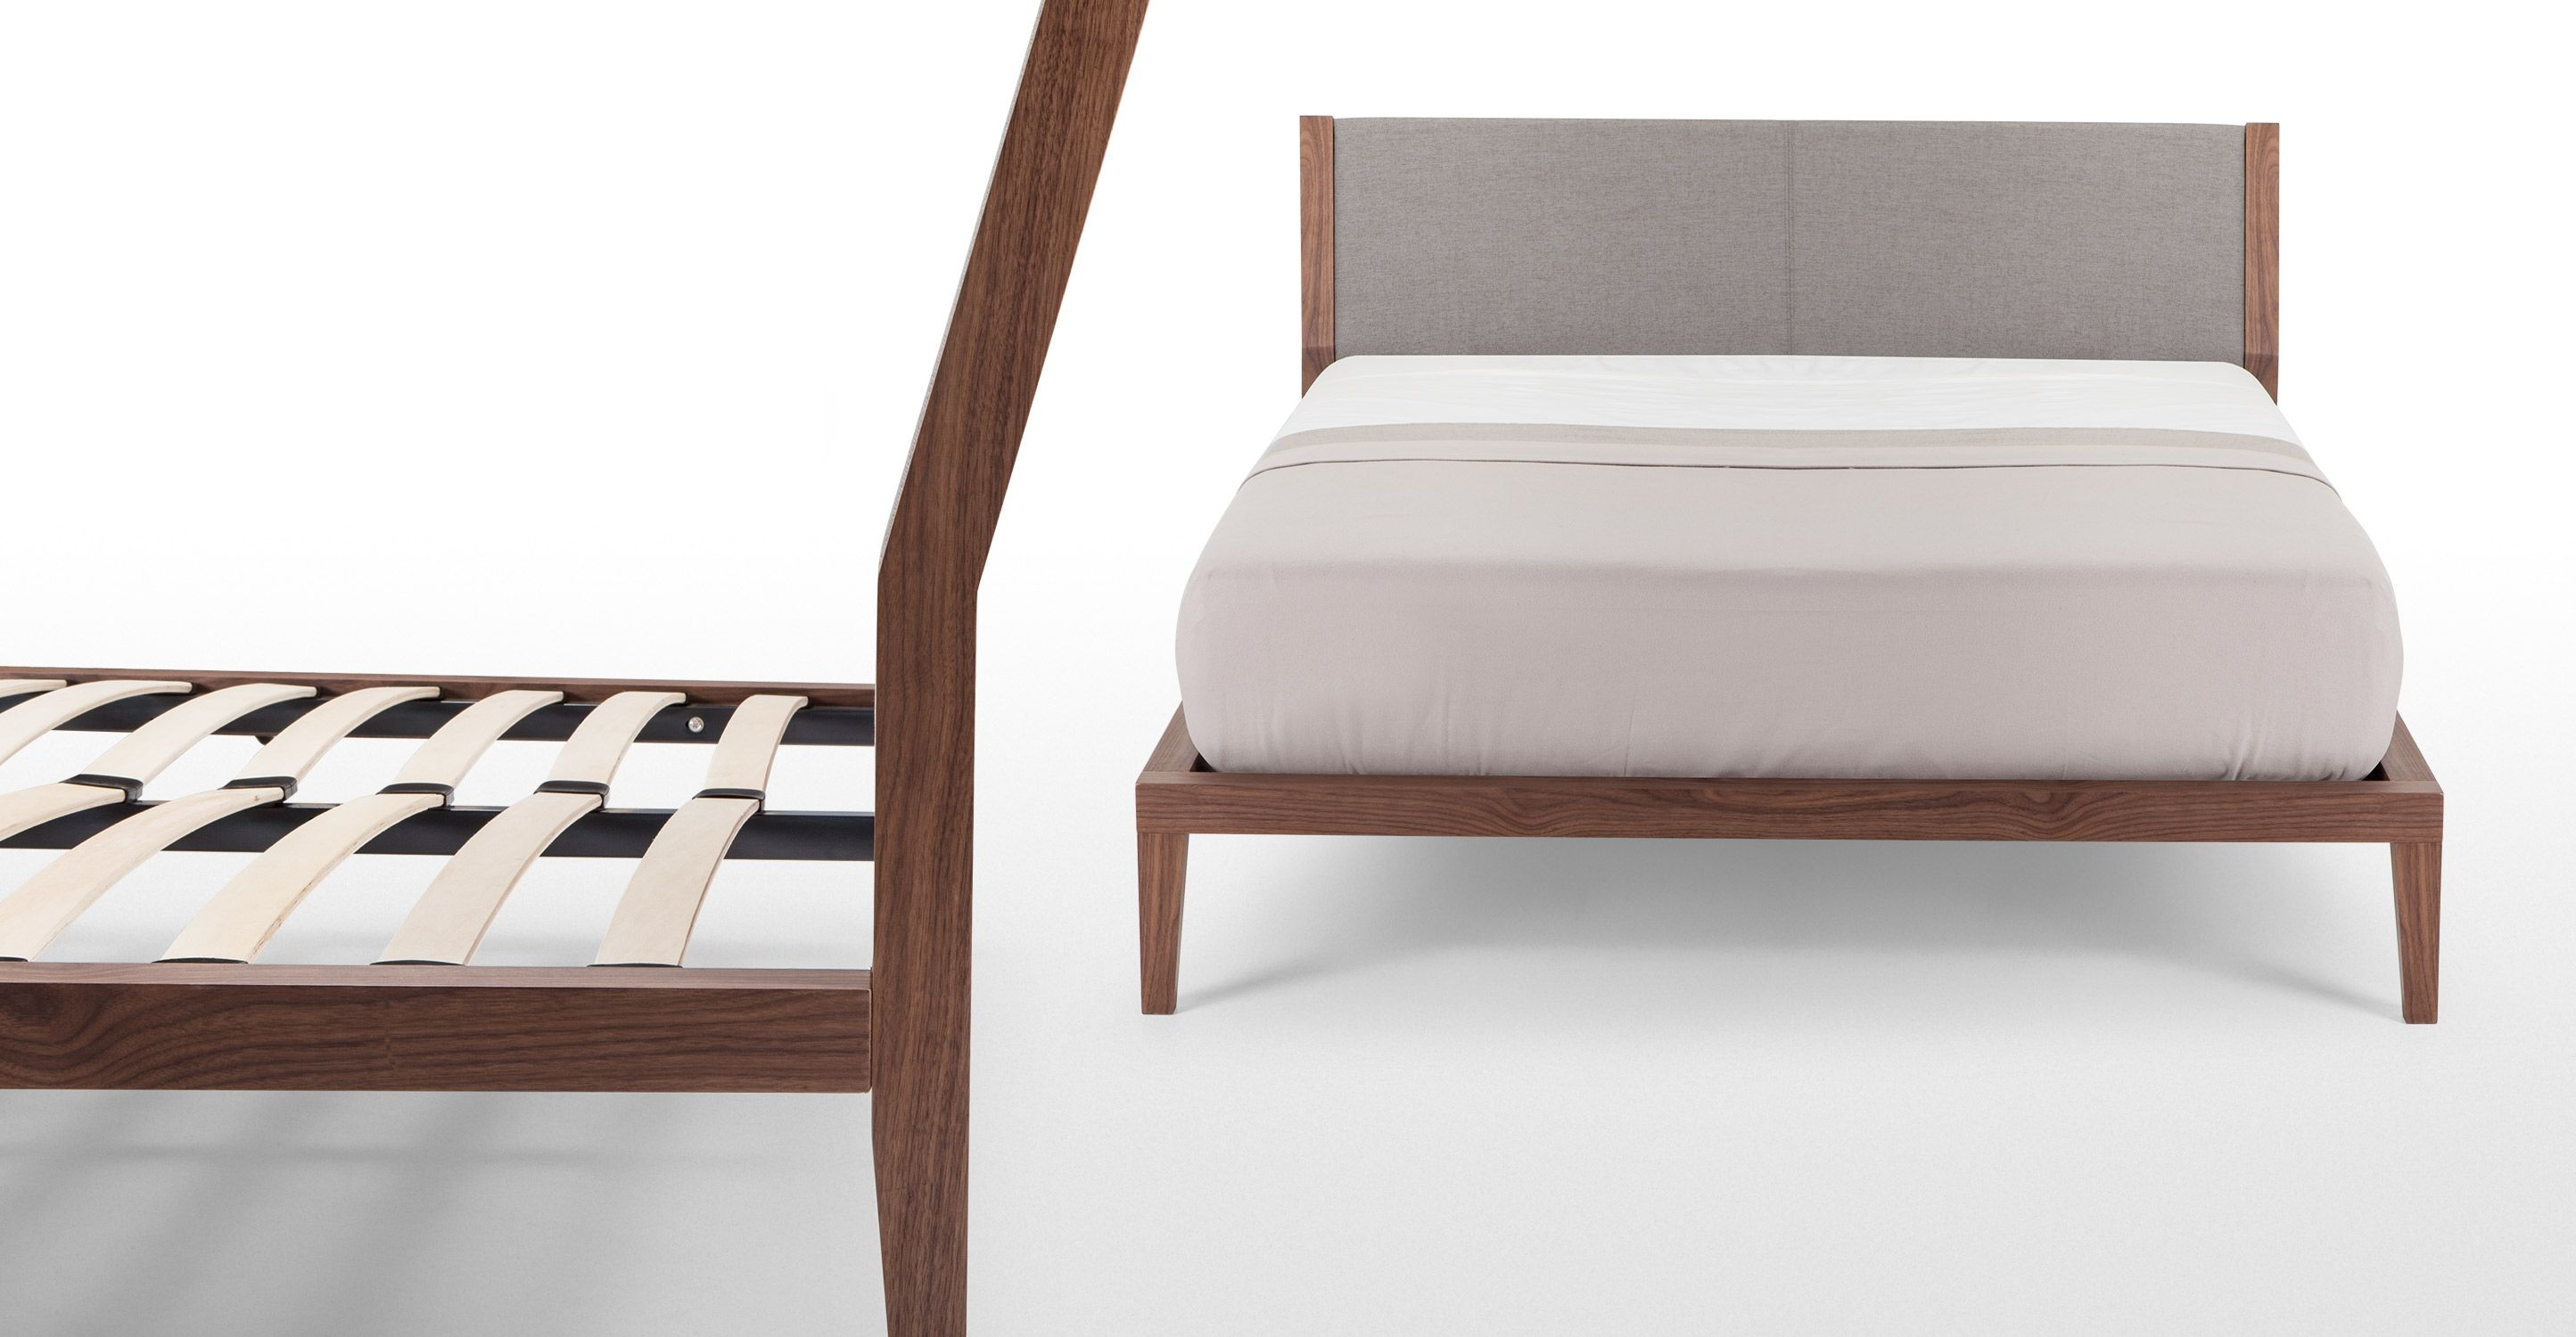 Lansdowne 160cm X 200cm King Size Bed With Storage In Walnut And Heron Grey Made Com Double Bed With Storage Bed Storage King Size Bed